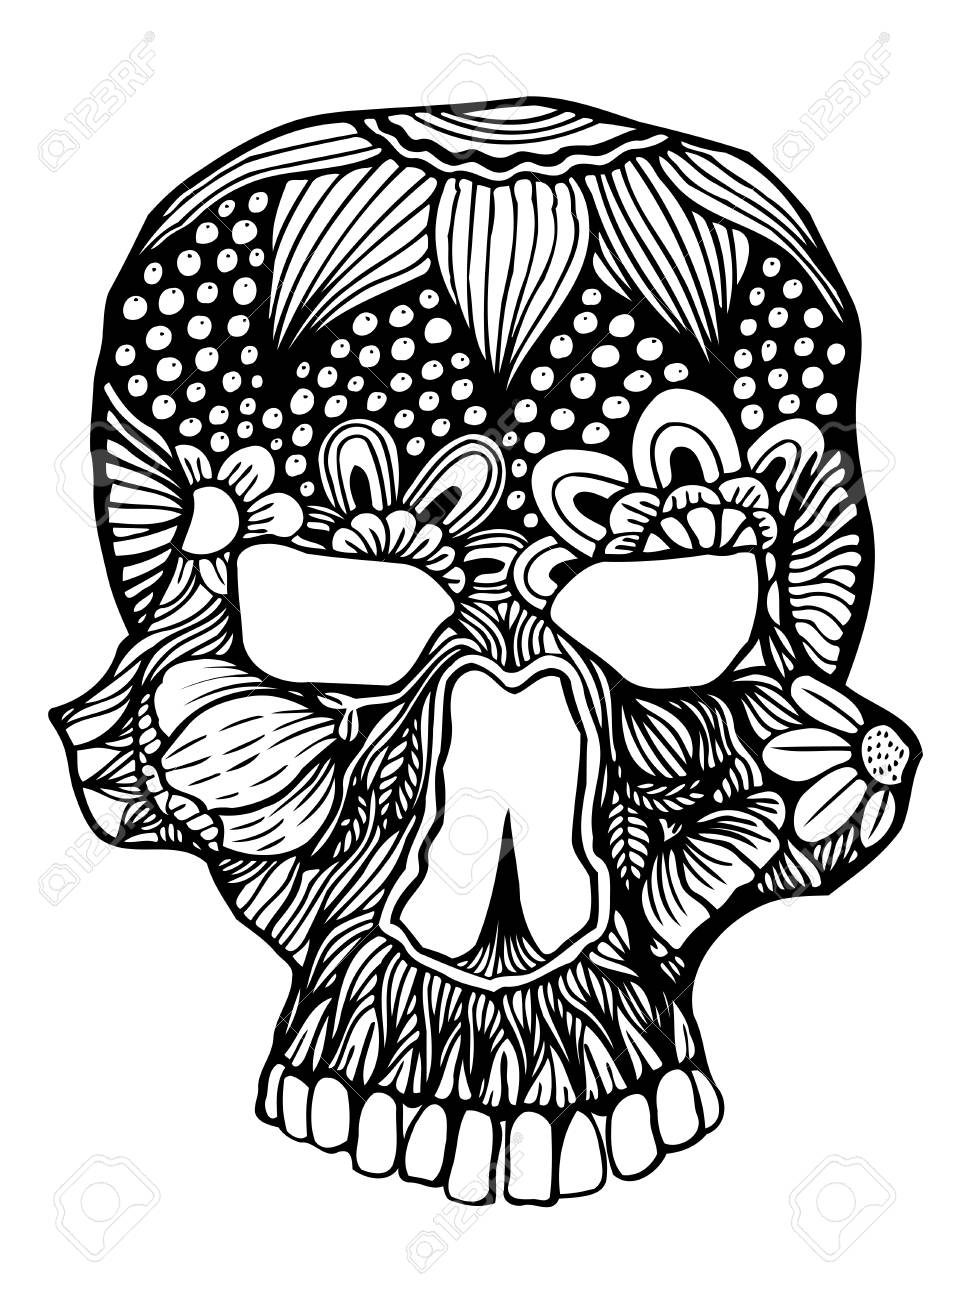 Zentangle Stylized Skull For Halloween Freehand Sketch For Adult Royalty Free Cliparts Vectors And Stock Illustration Image 63791431